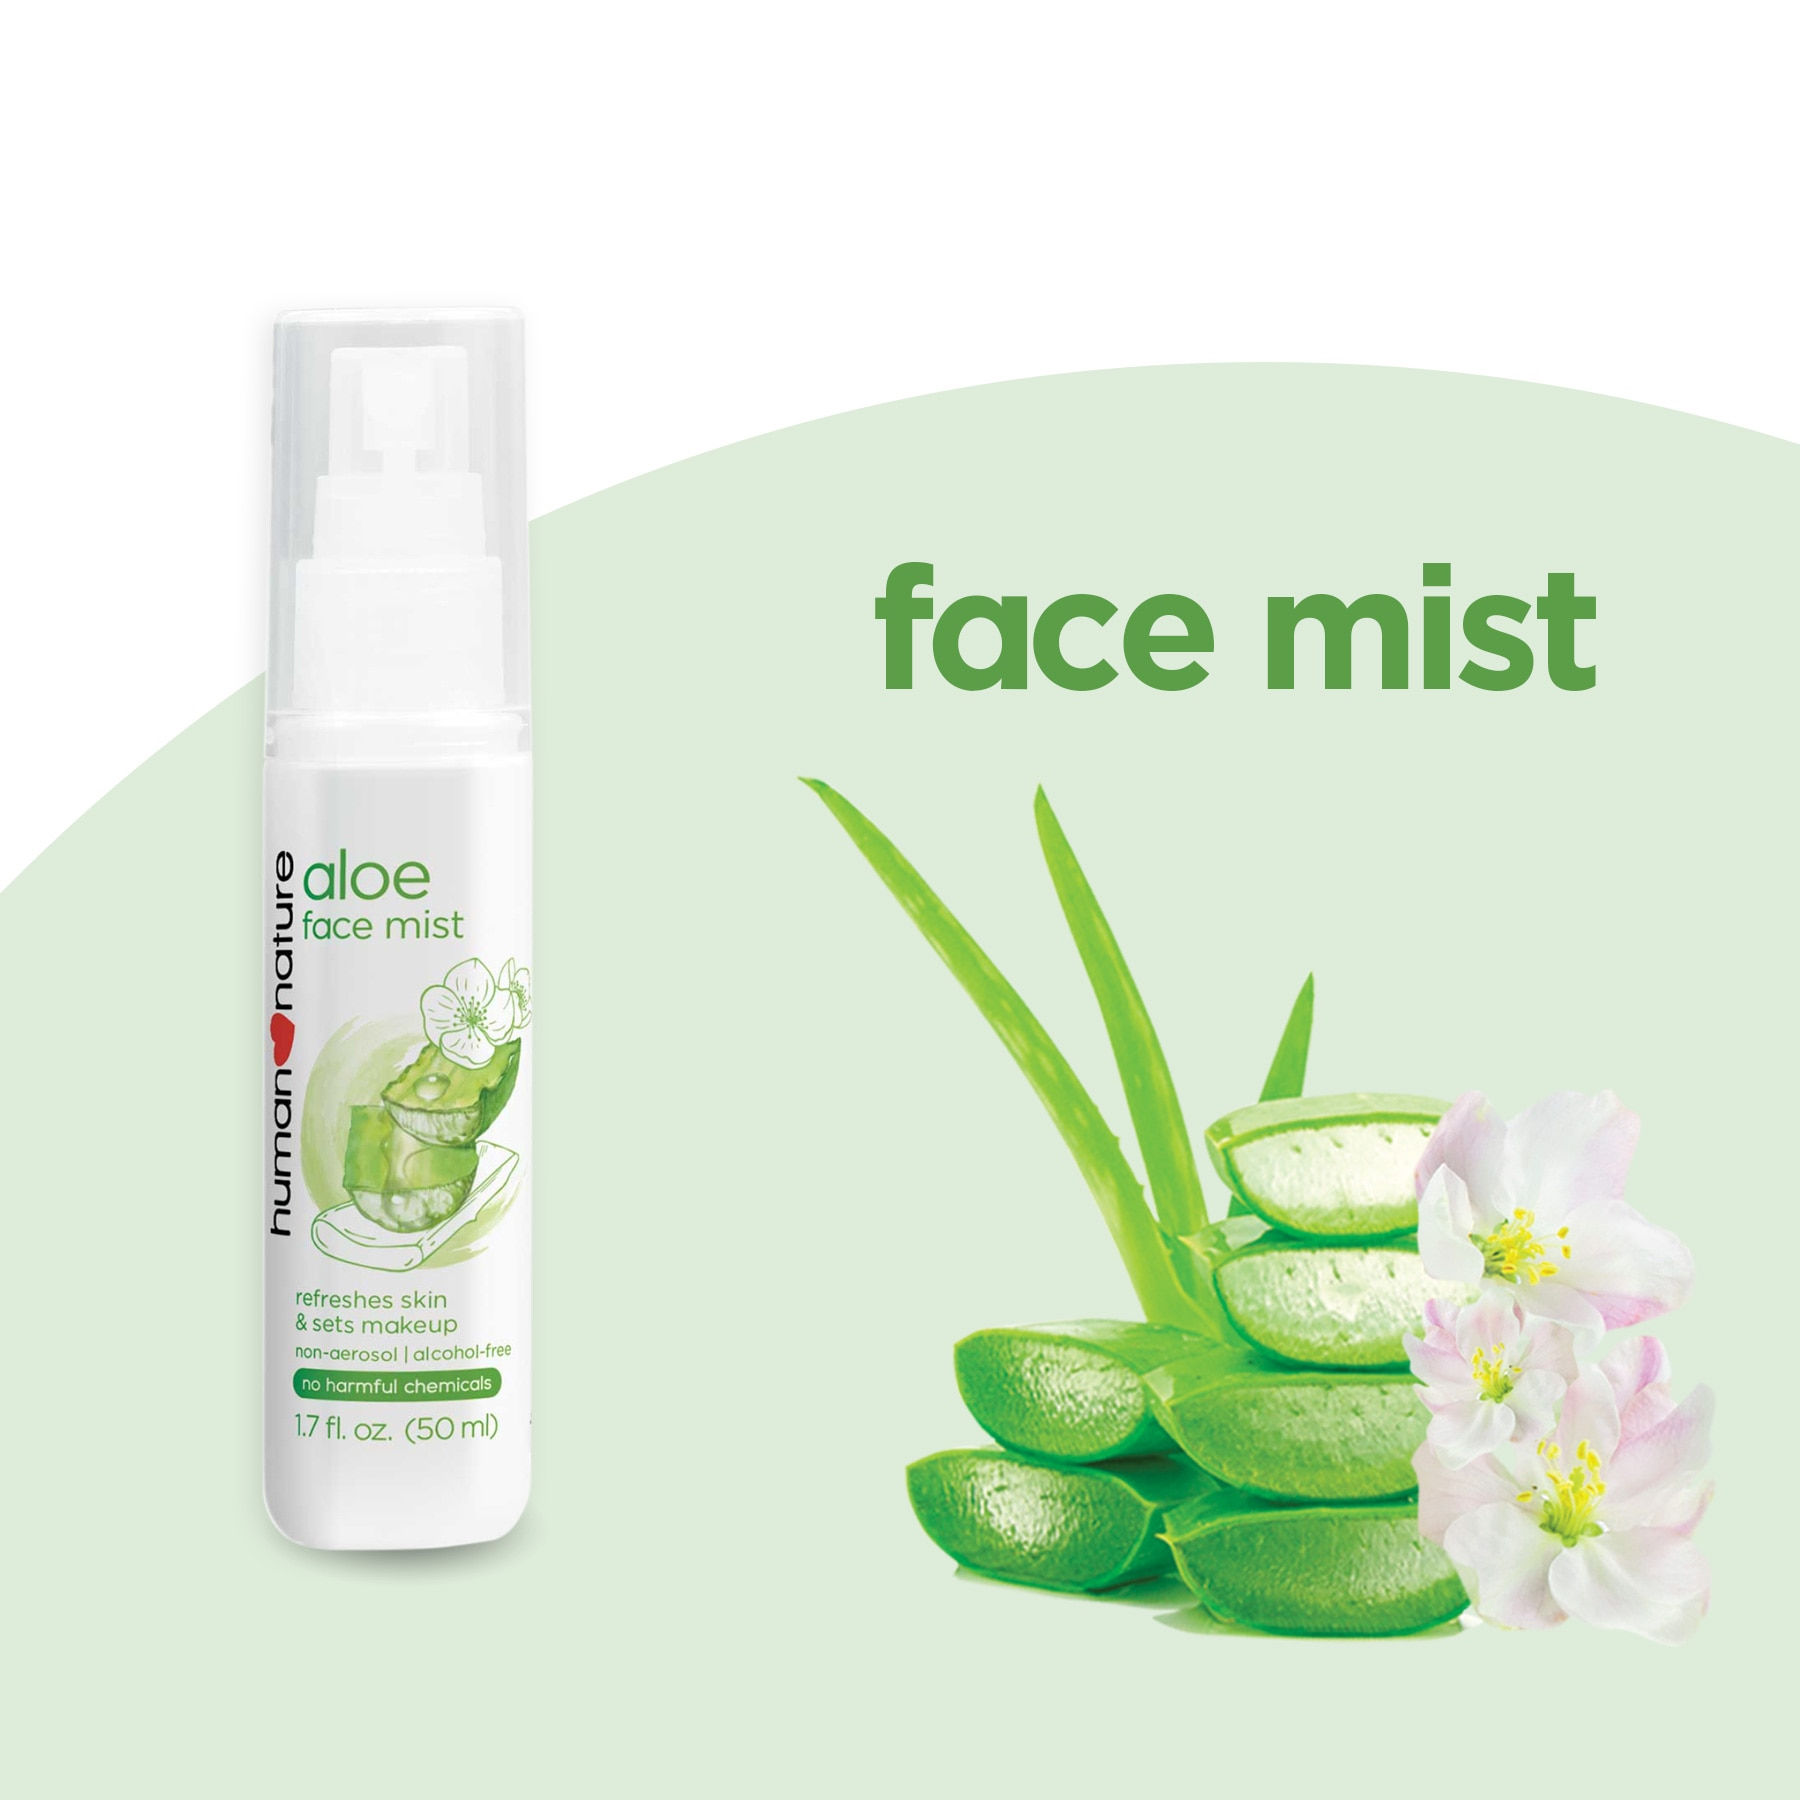 HUMAN NATUREHydrating Face Mist with Aloe Vera 50ml,Facial MistFree (1) Watsons Dermaction Plus Antiacne St20x2 for every purchase of Skin Care products